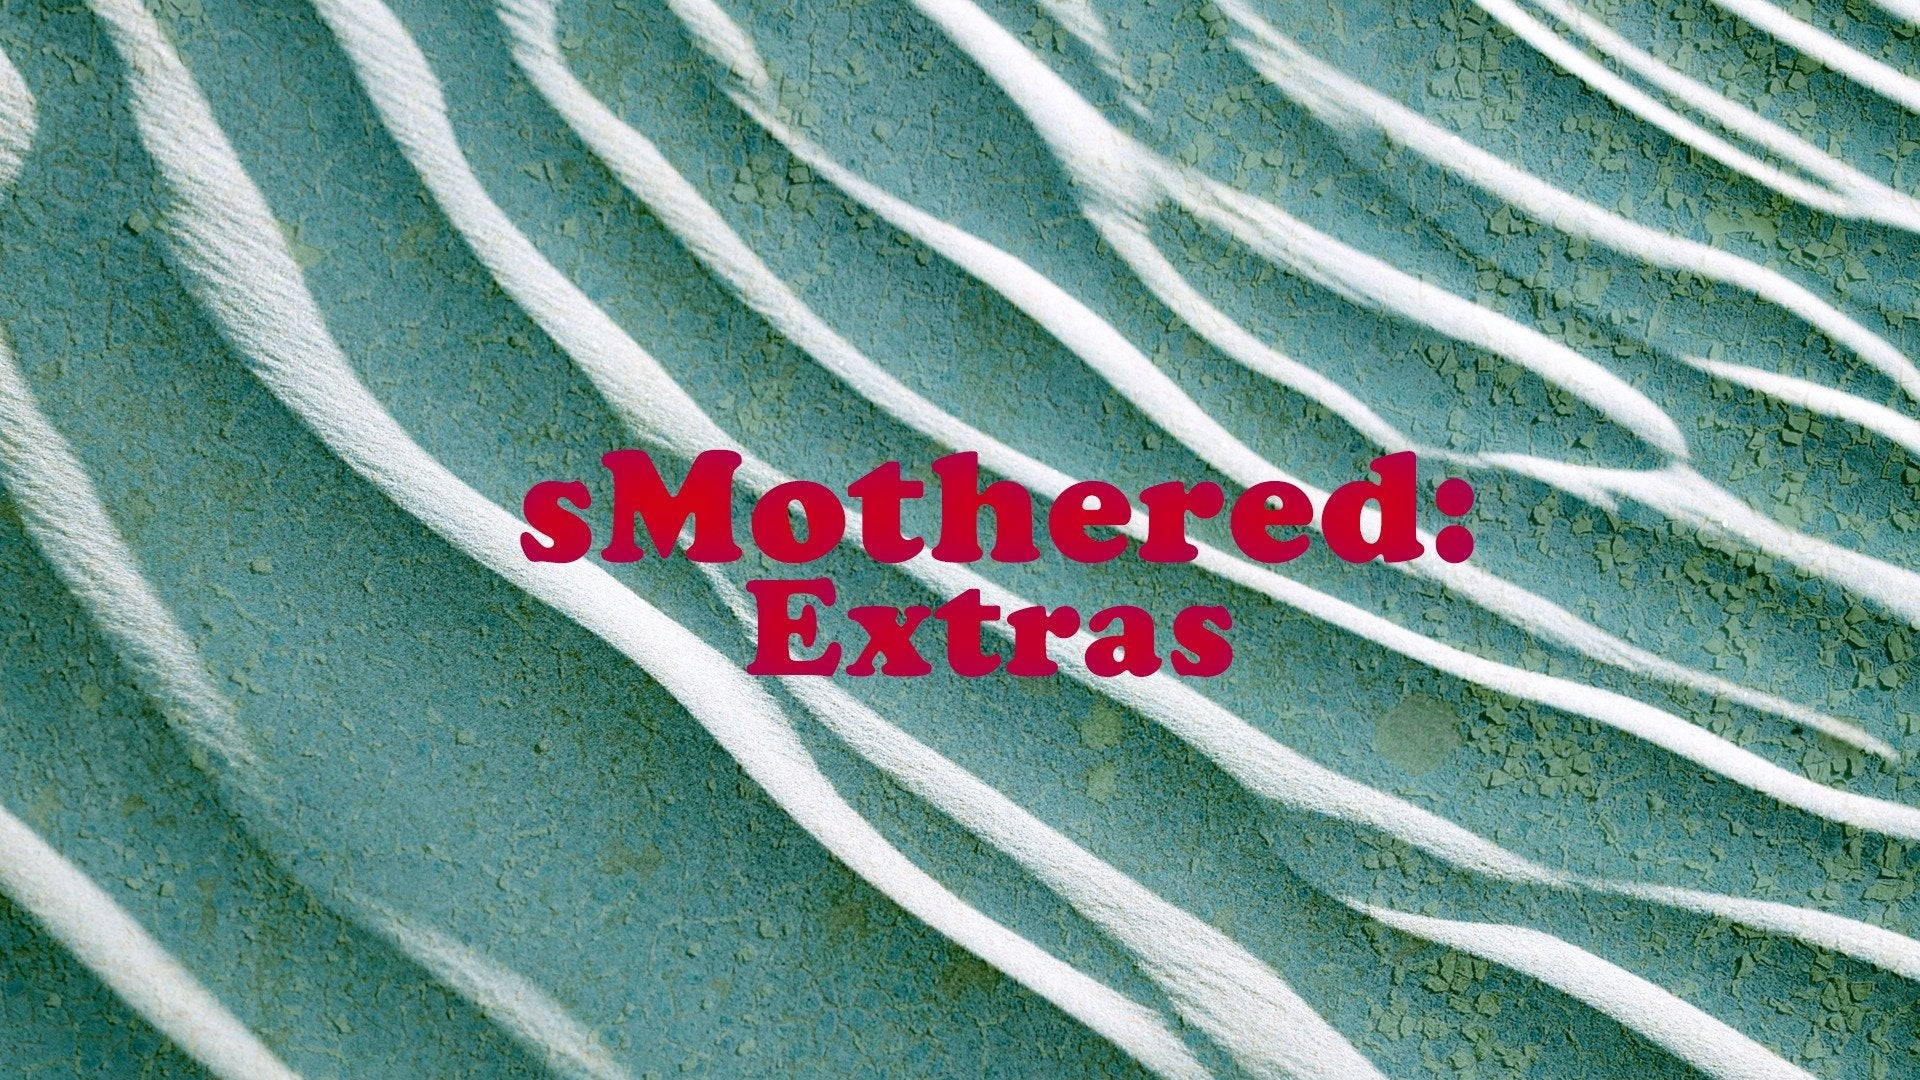 sMothered: Extras